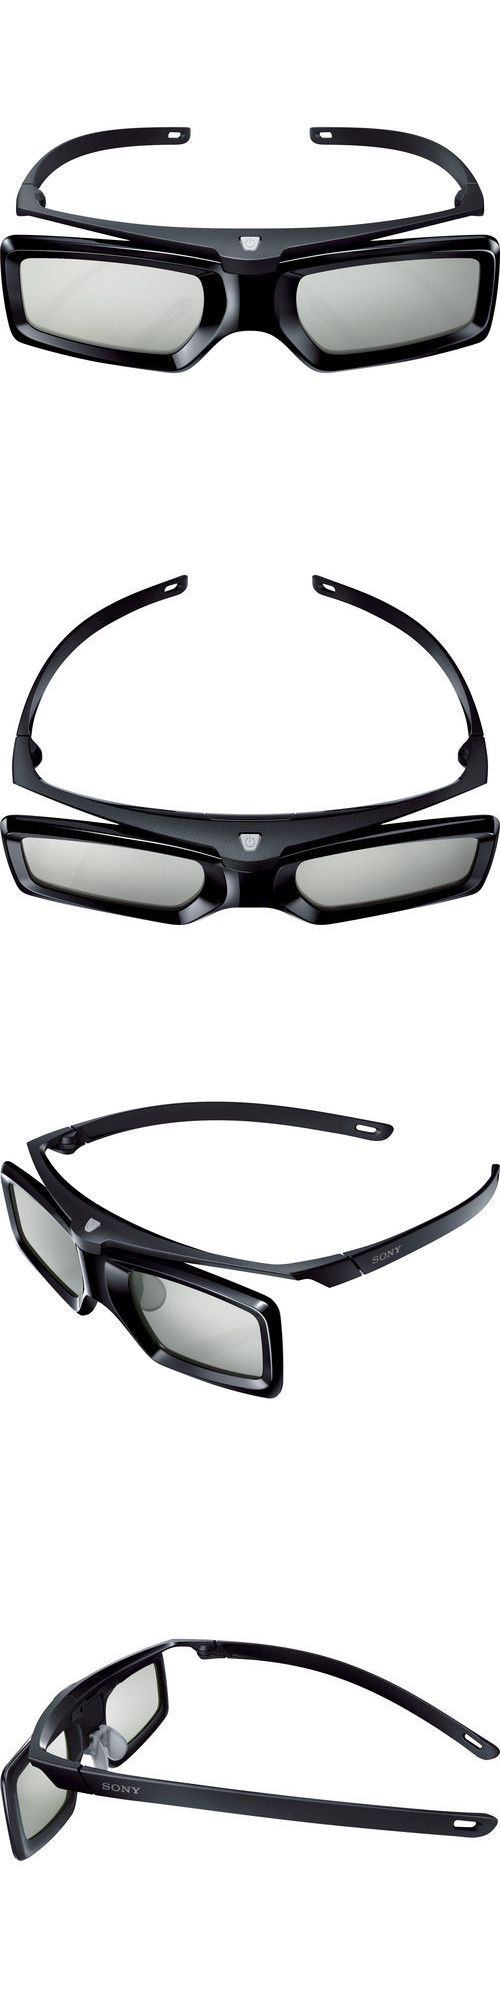 3D TV Glasses and Accessories: Sony Tdgbt500a Active Bluetooth 3D Glasses, Full Hd 3D Imaging - Tdg-Bt500a BUY IT NOW ONLY: $44.92